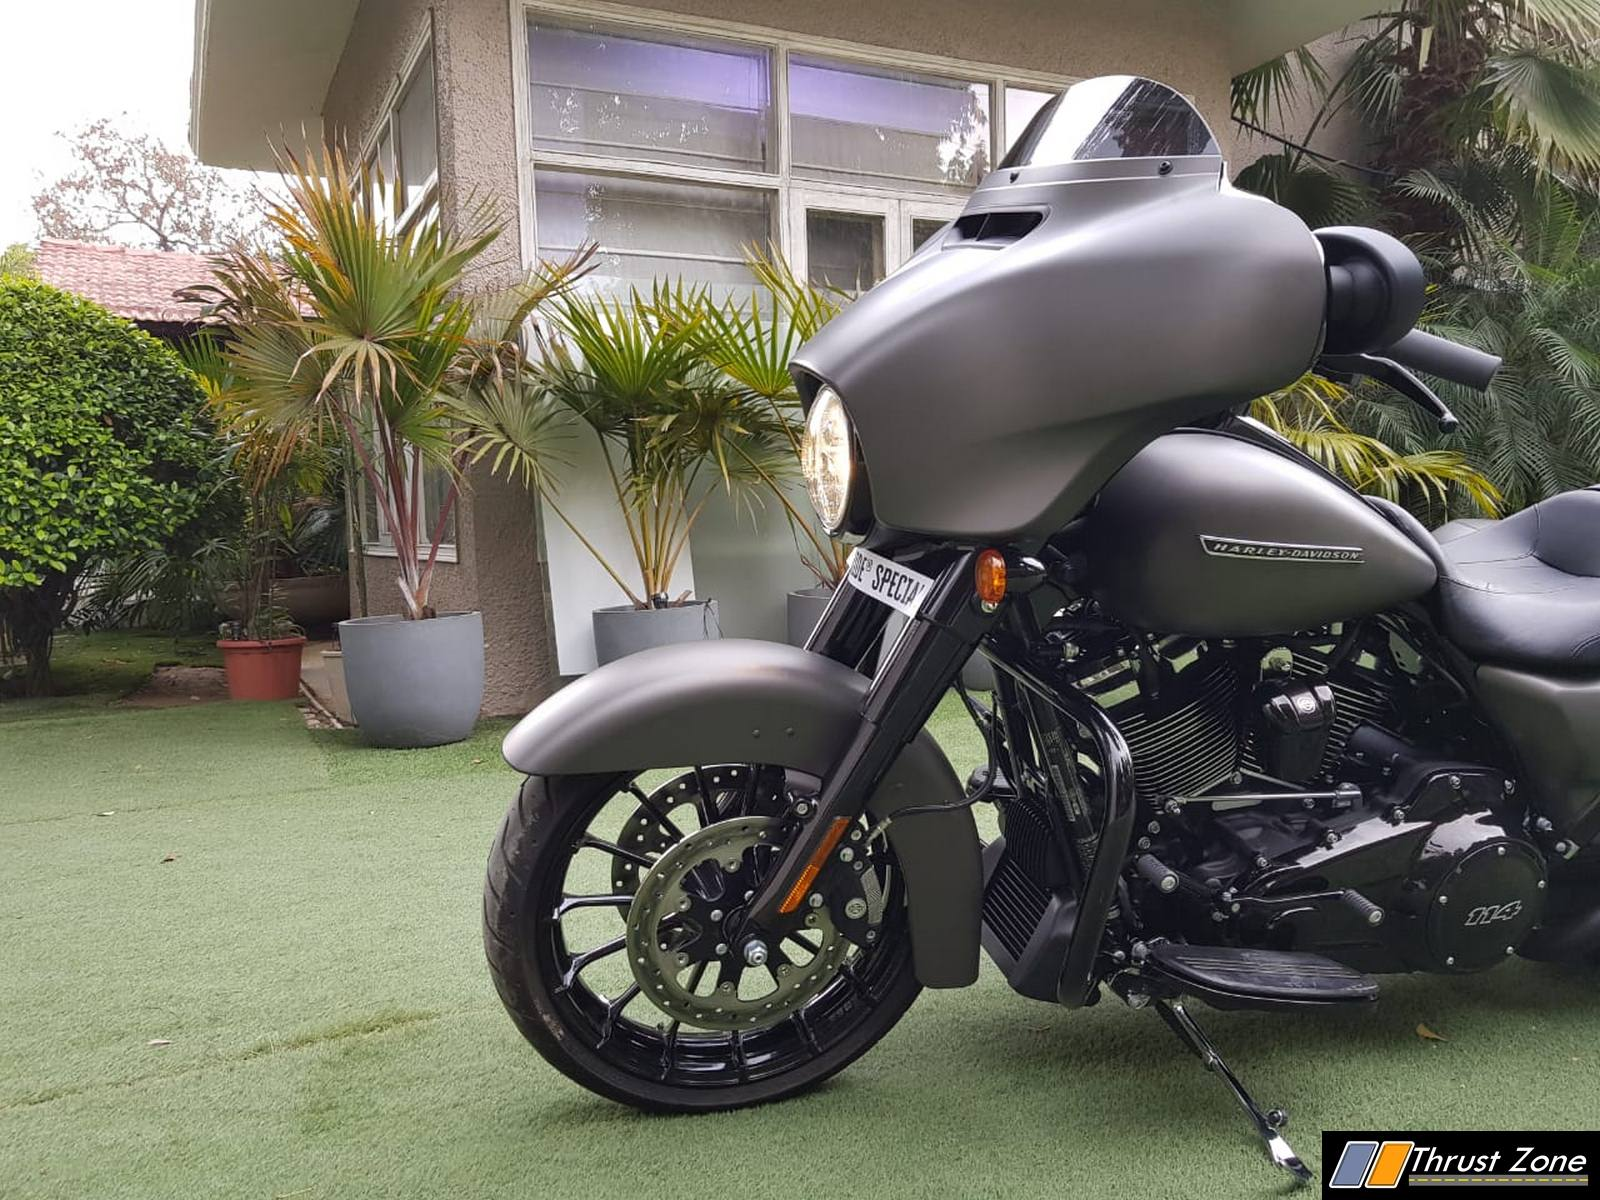 https://www.thrustzone.com/wp-content/uploads/2019/03/Harley-Davidson-street-glide-special-india-launch-4.jpg